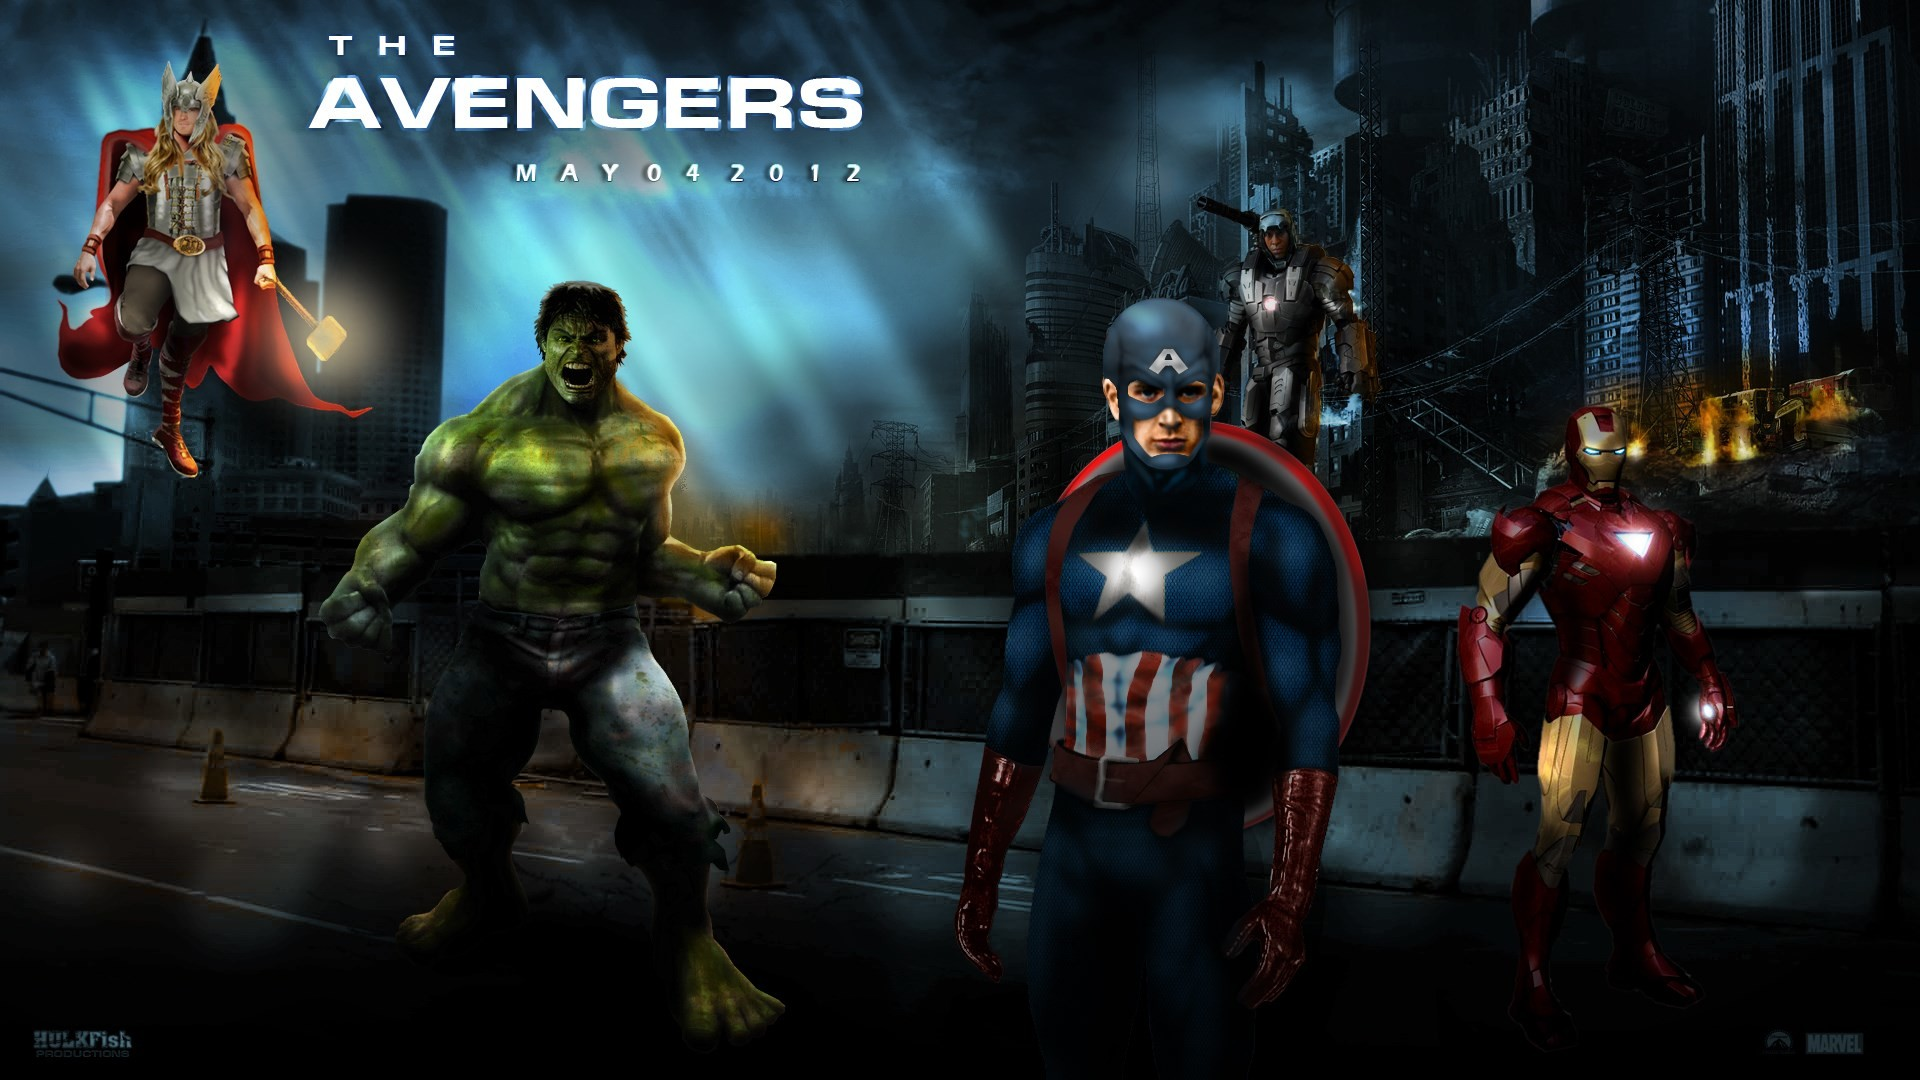 1920x1080 avengers wallpapers free